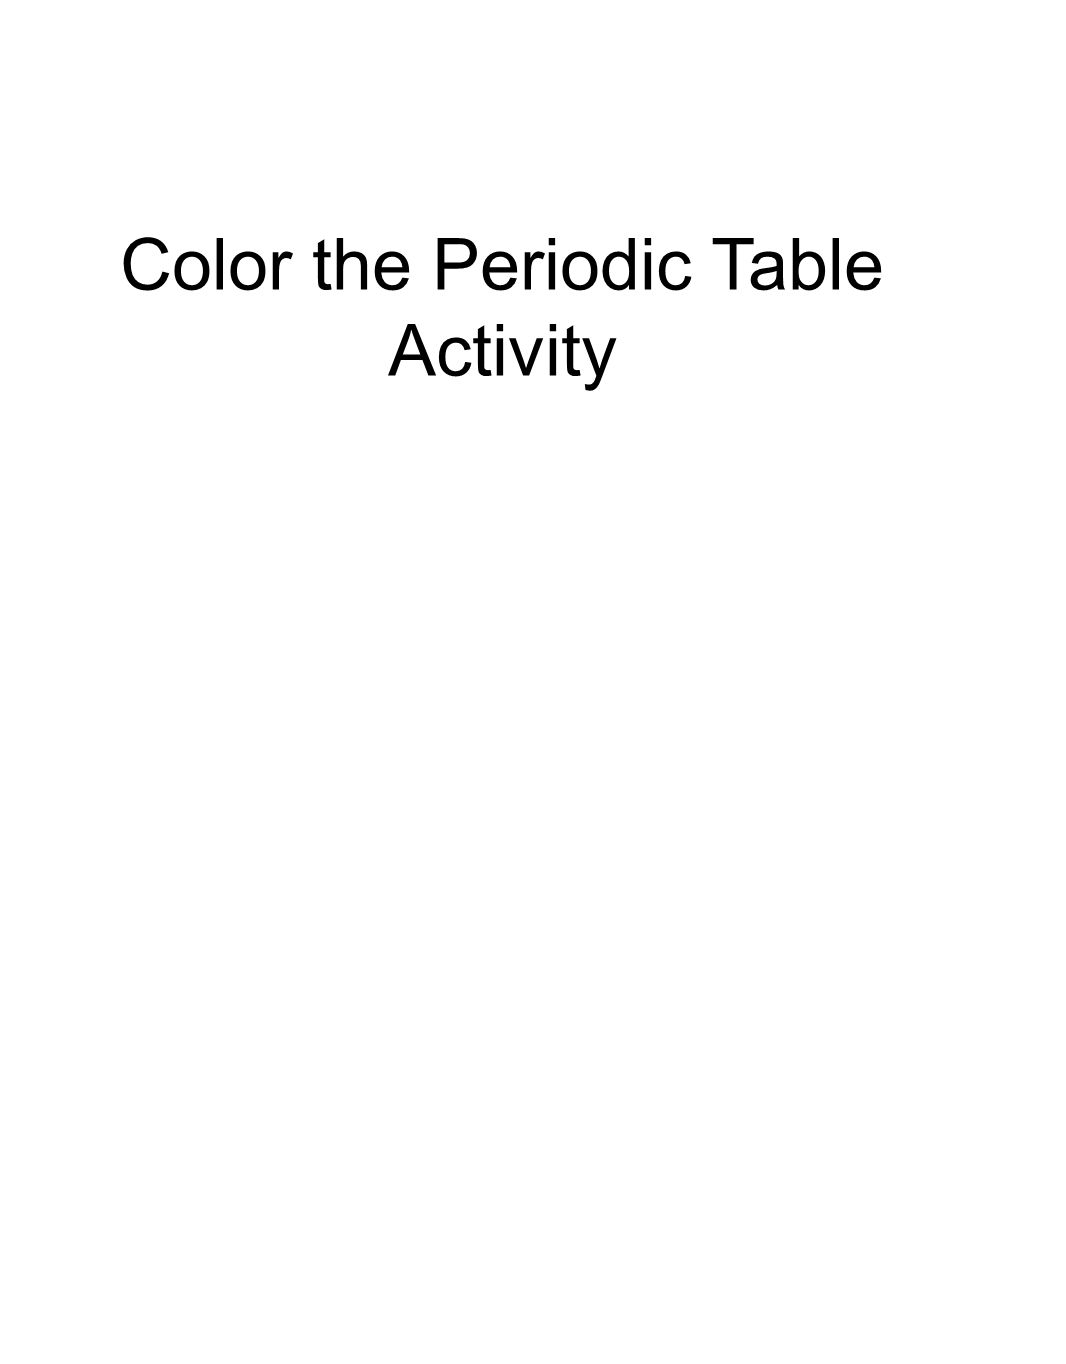 What are the horizontal rows on the periodic table image the periodic table classification activity you are a chemist 11 color the periodic table activity gamestrikefo gamestrikefo Choice Image